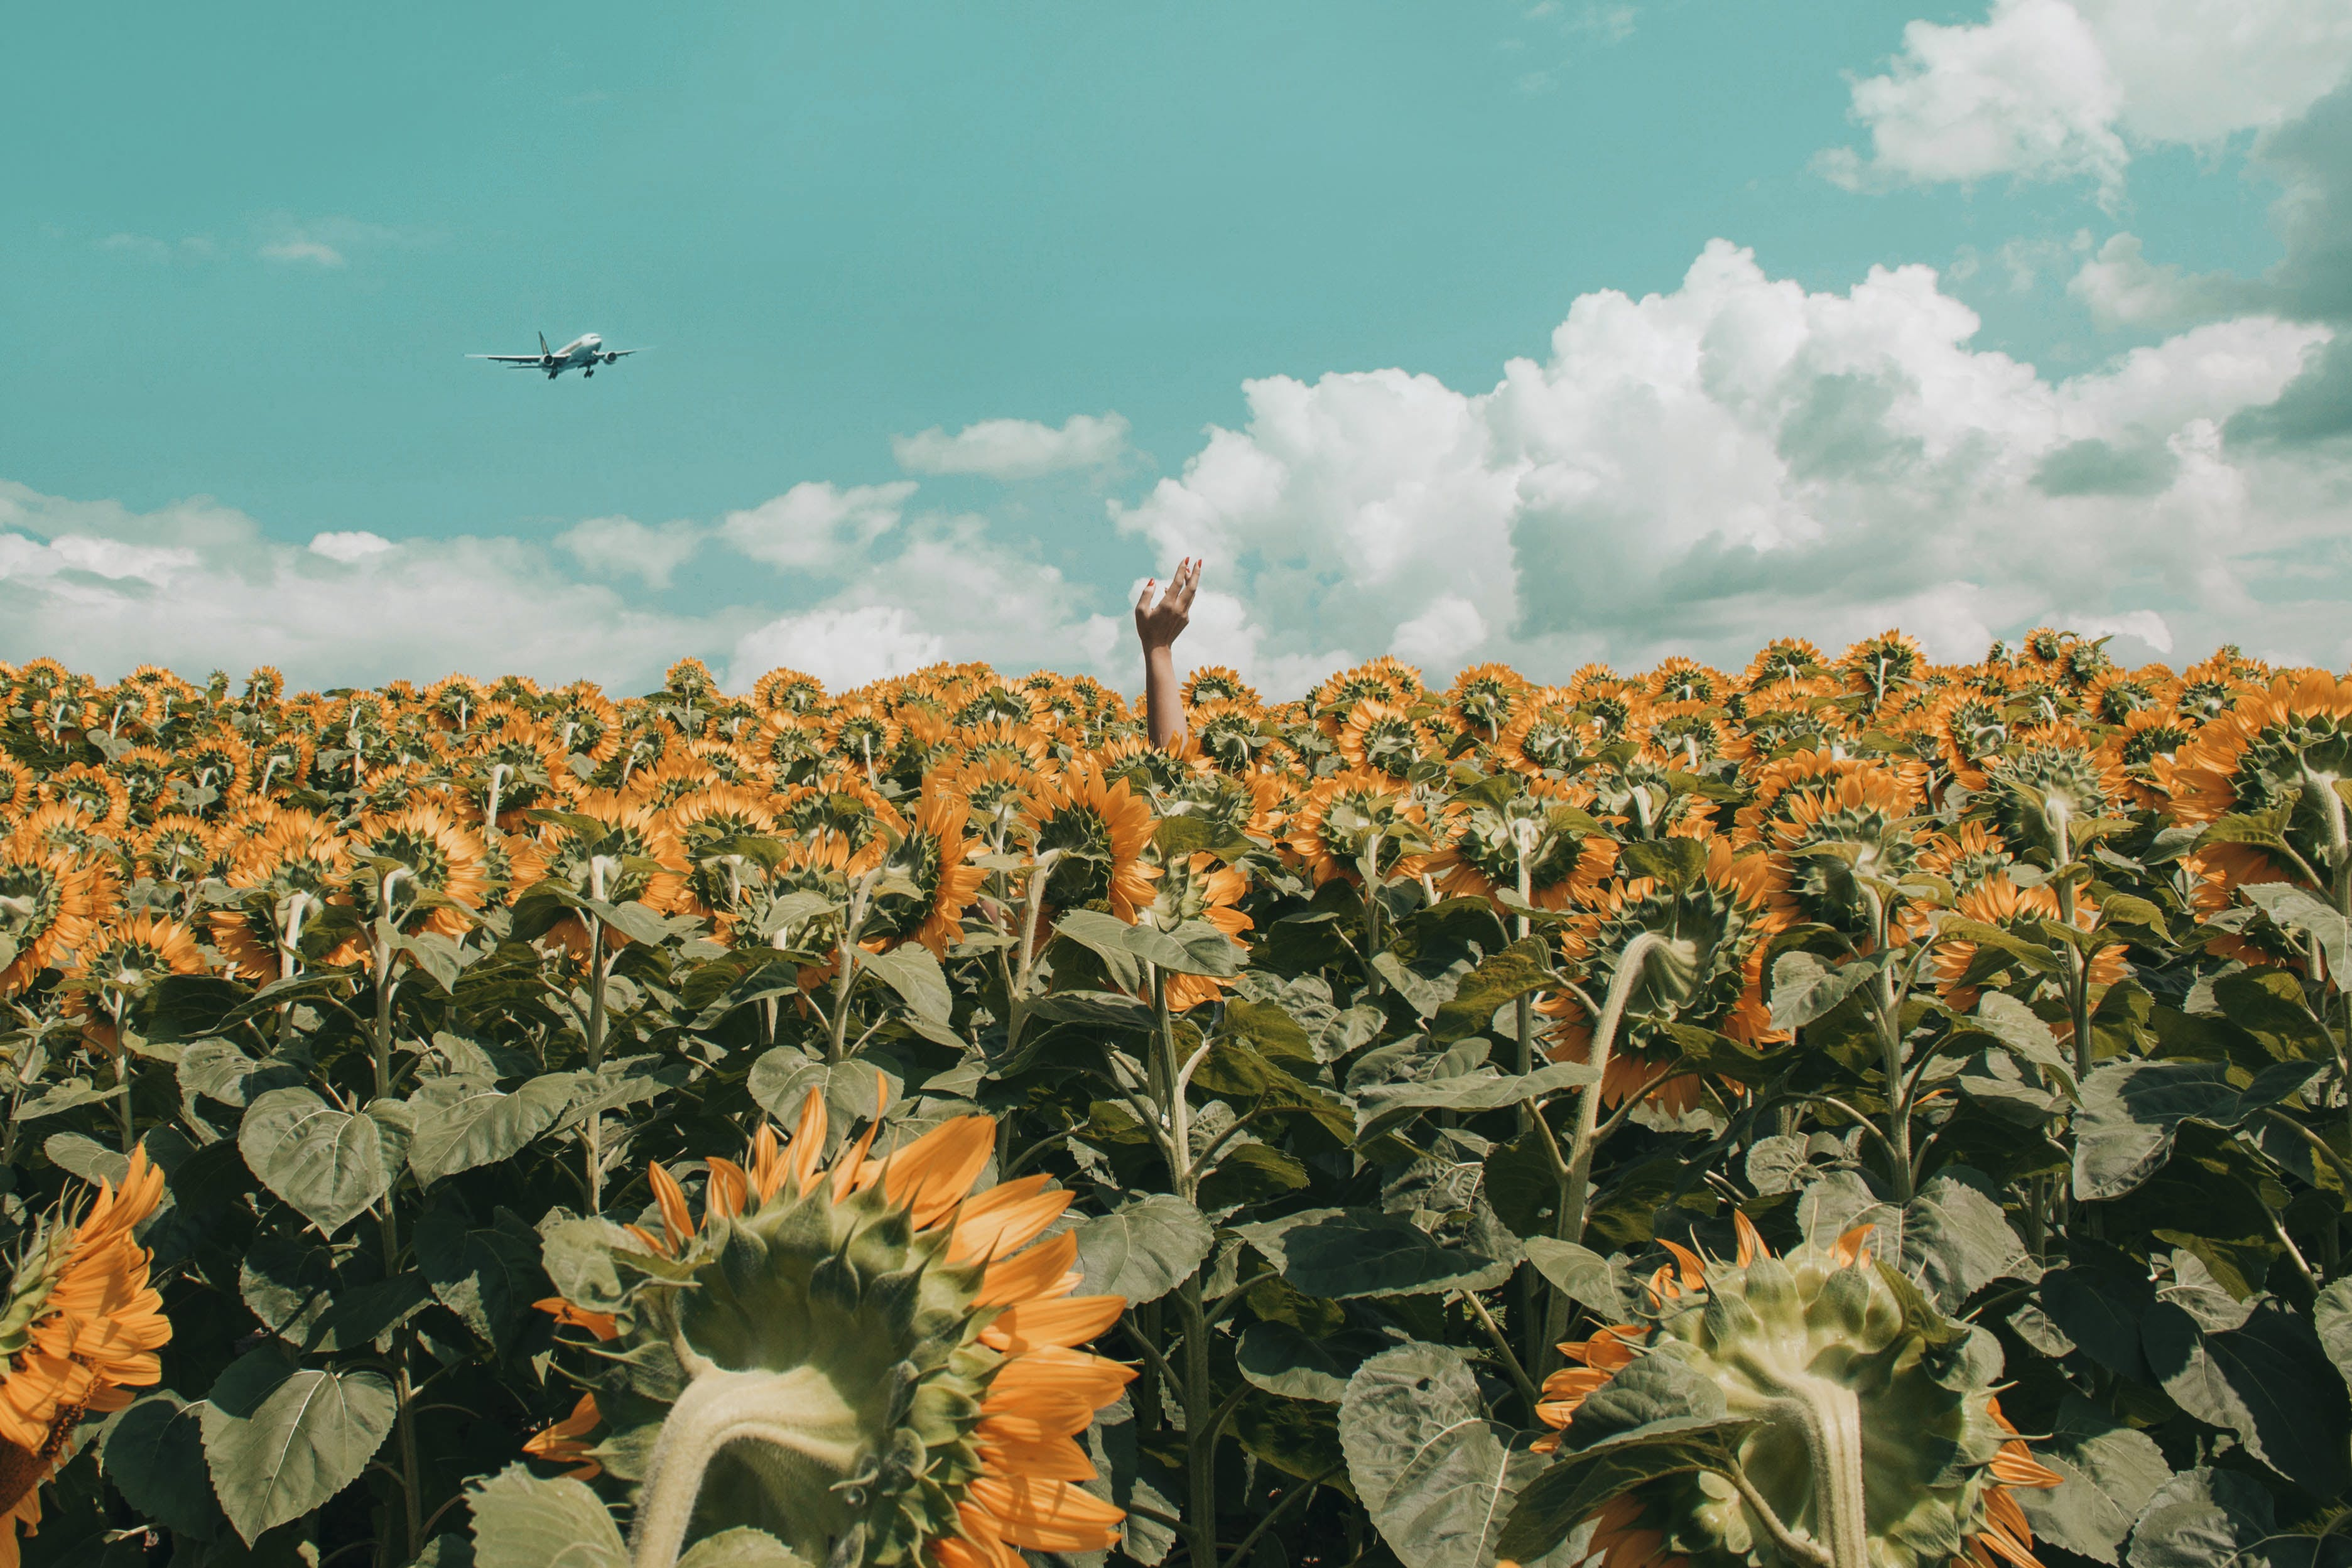 People Rising His Hand in the Middle of Sunflower Field